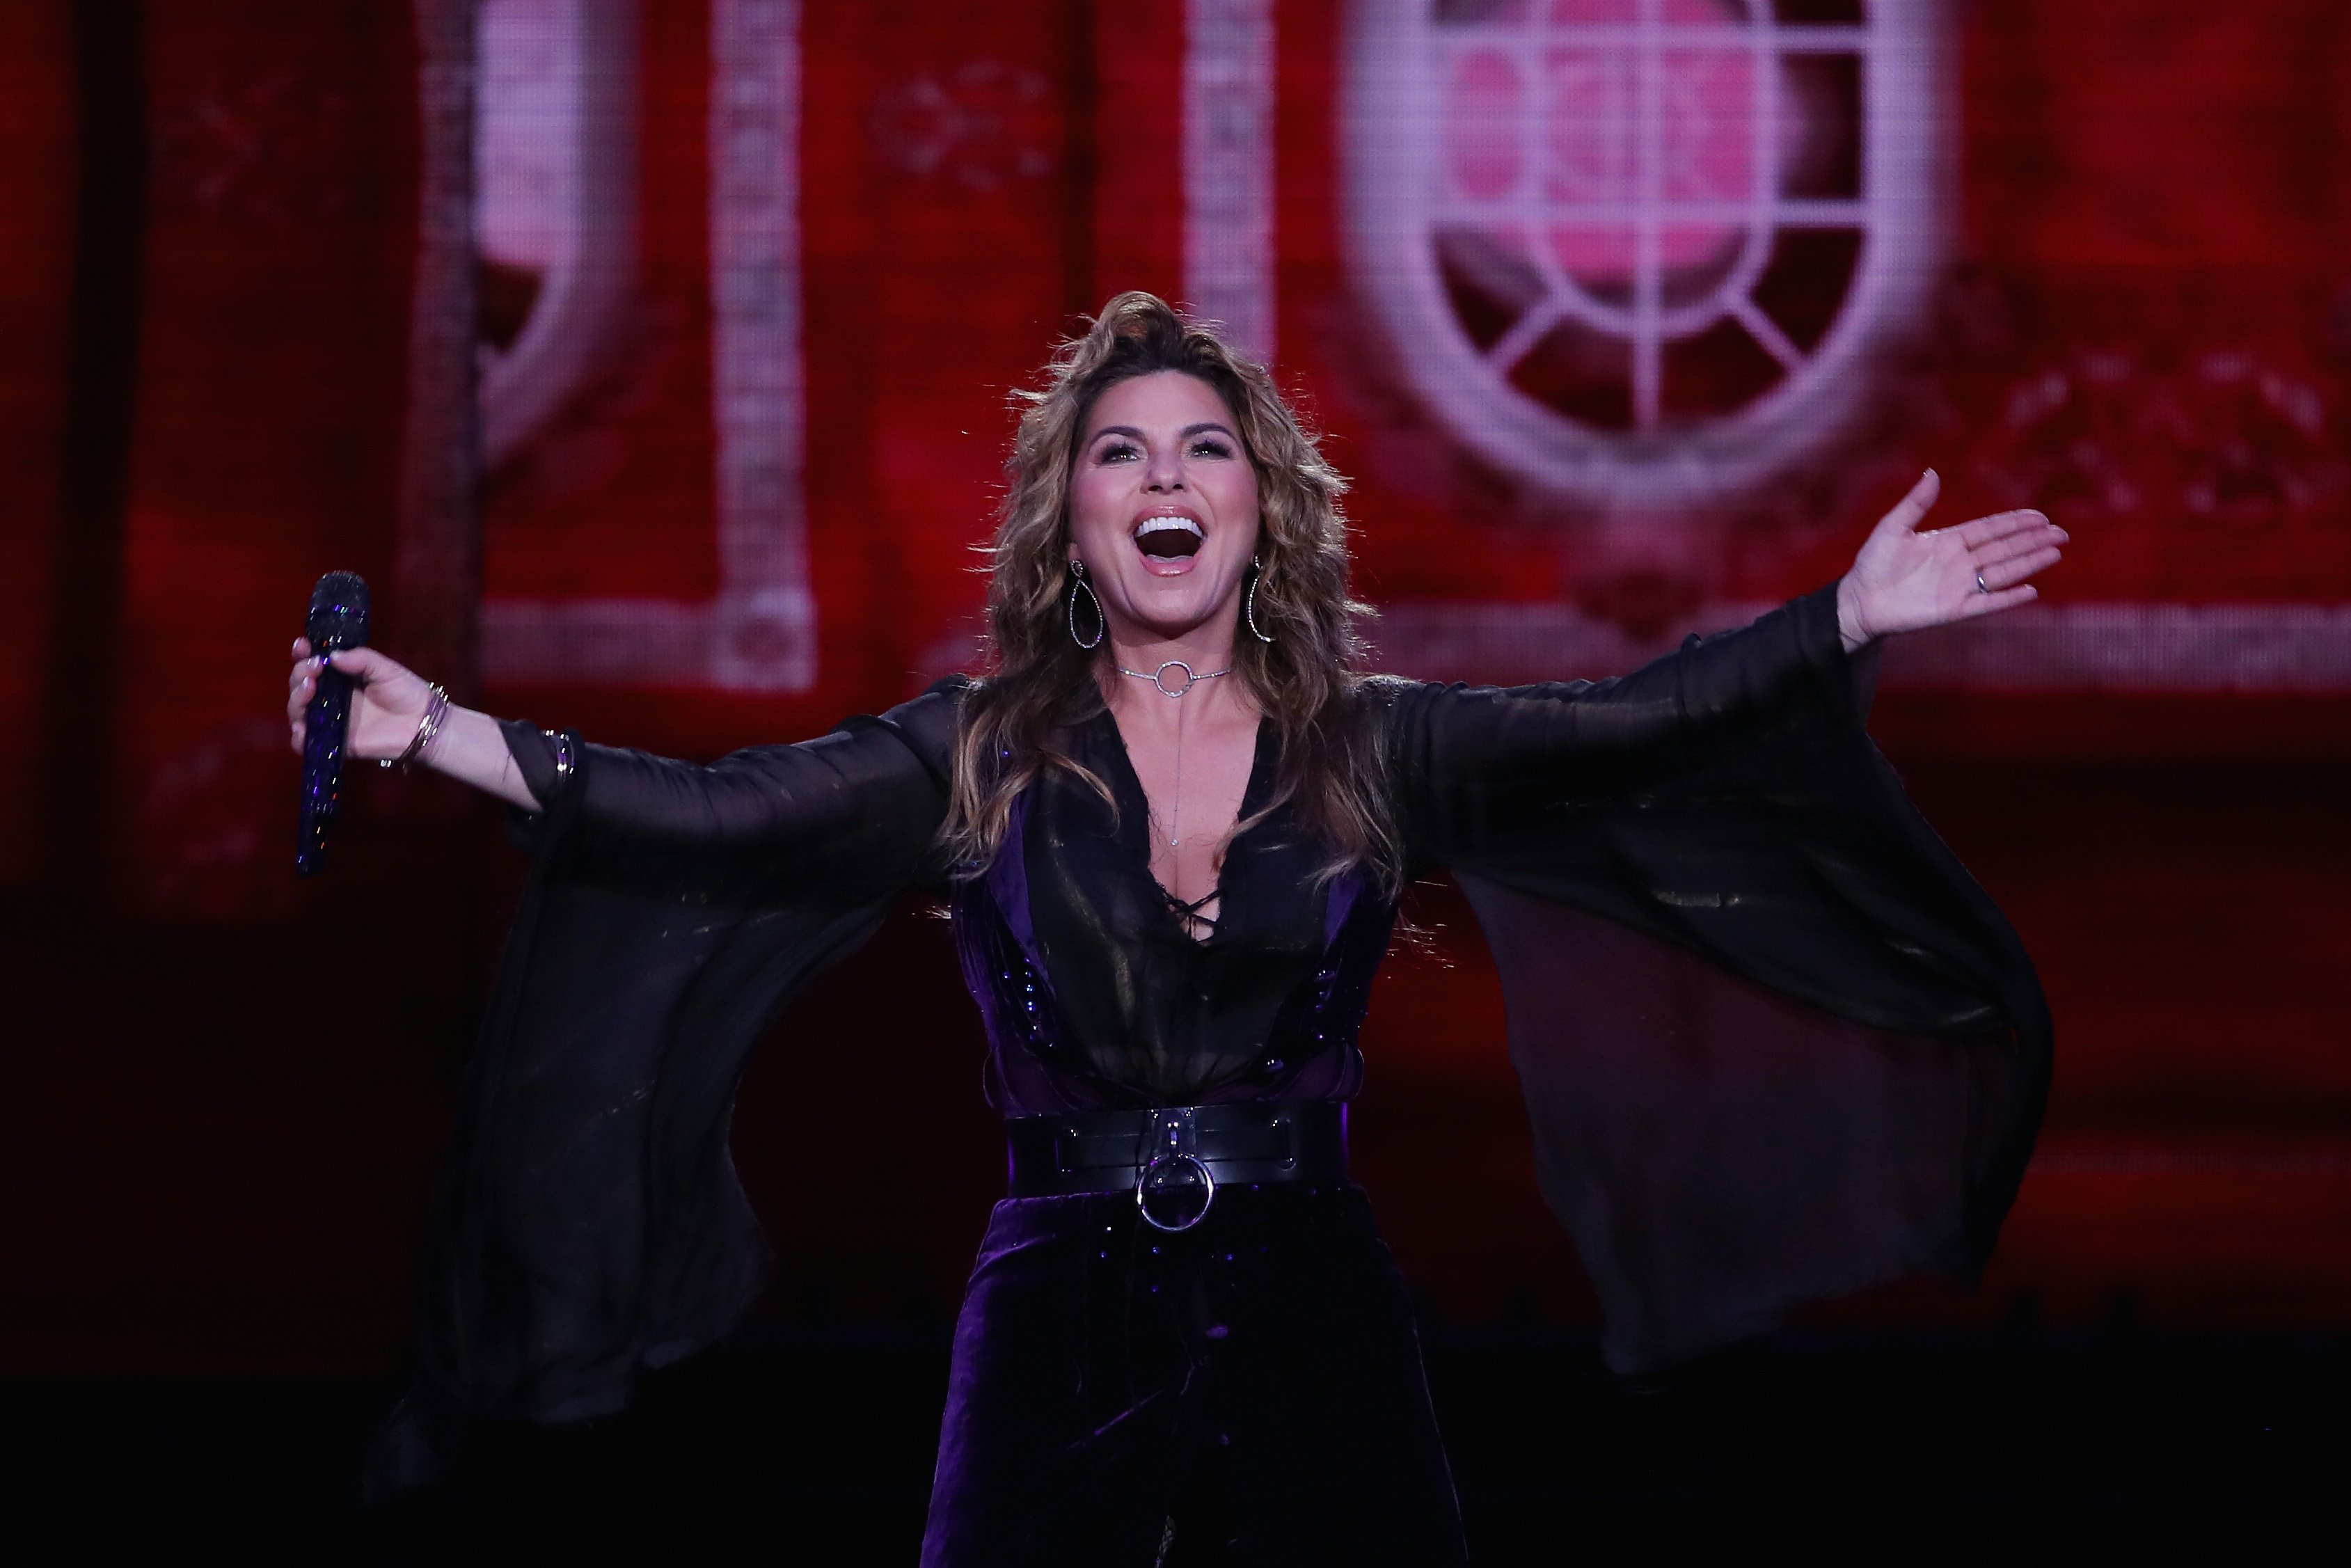 Shania Twain performs at the opening of the US Open in Queens, New York on August 28, 2017 | Photo: Getty Images